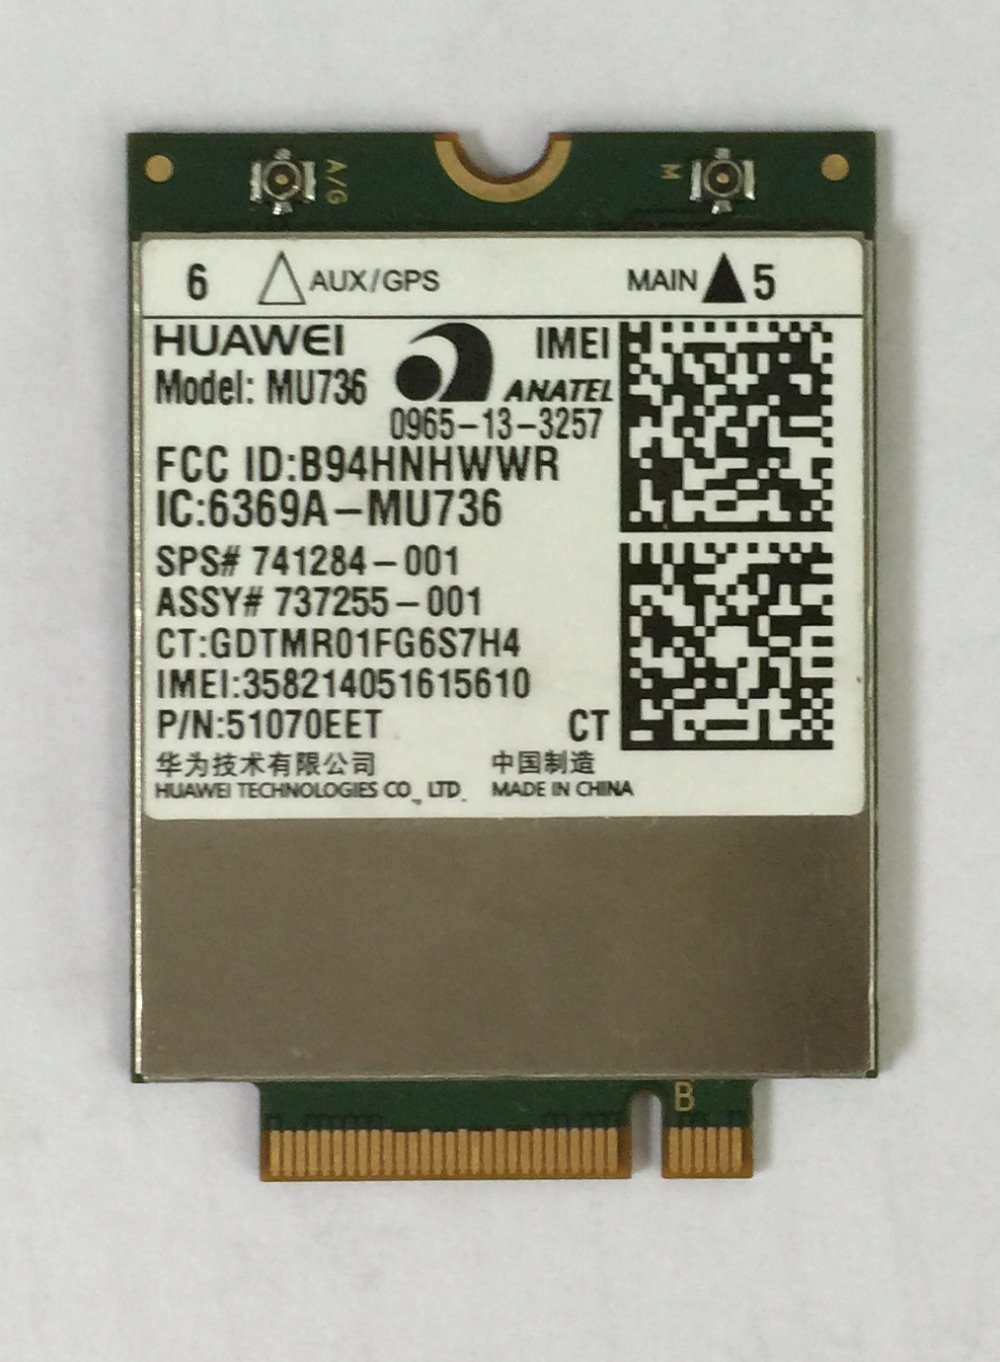 HUAWEI 3G LTE-module MU736 Quad-band ontgrendeld GPS NGFF AT & T Swisscom DT voor laptop-pad ultrabook